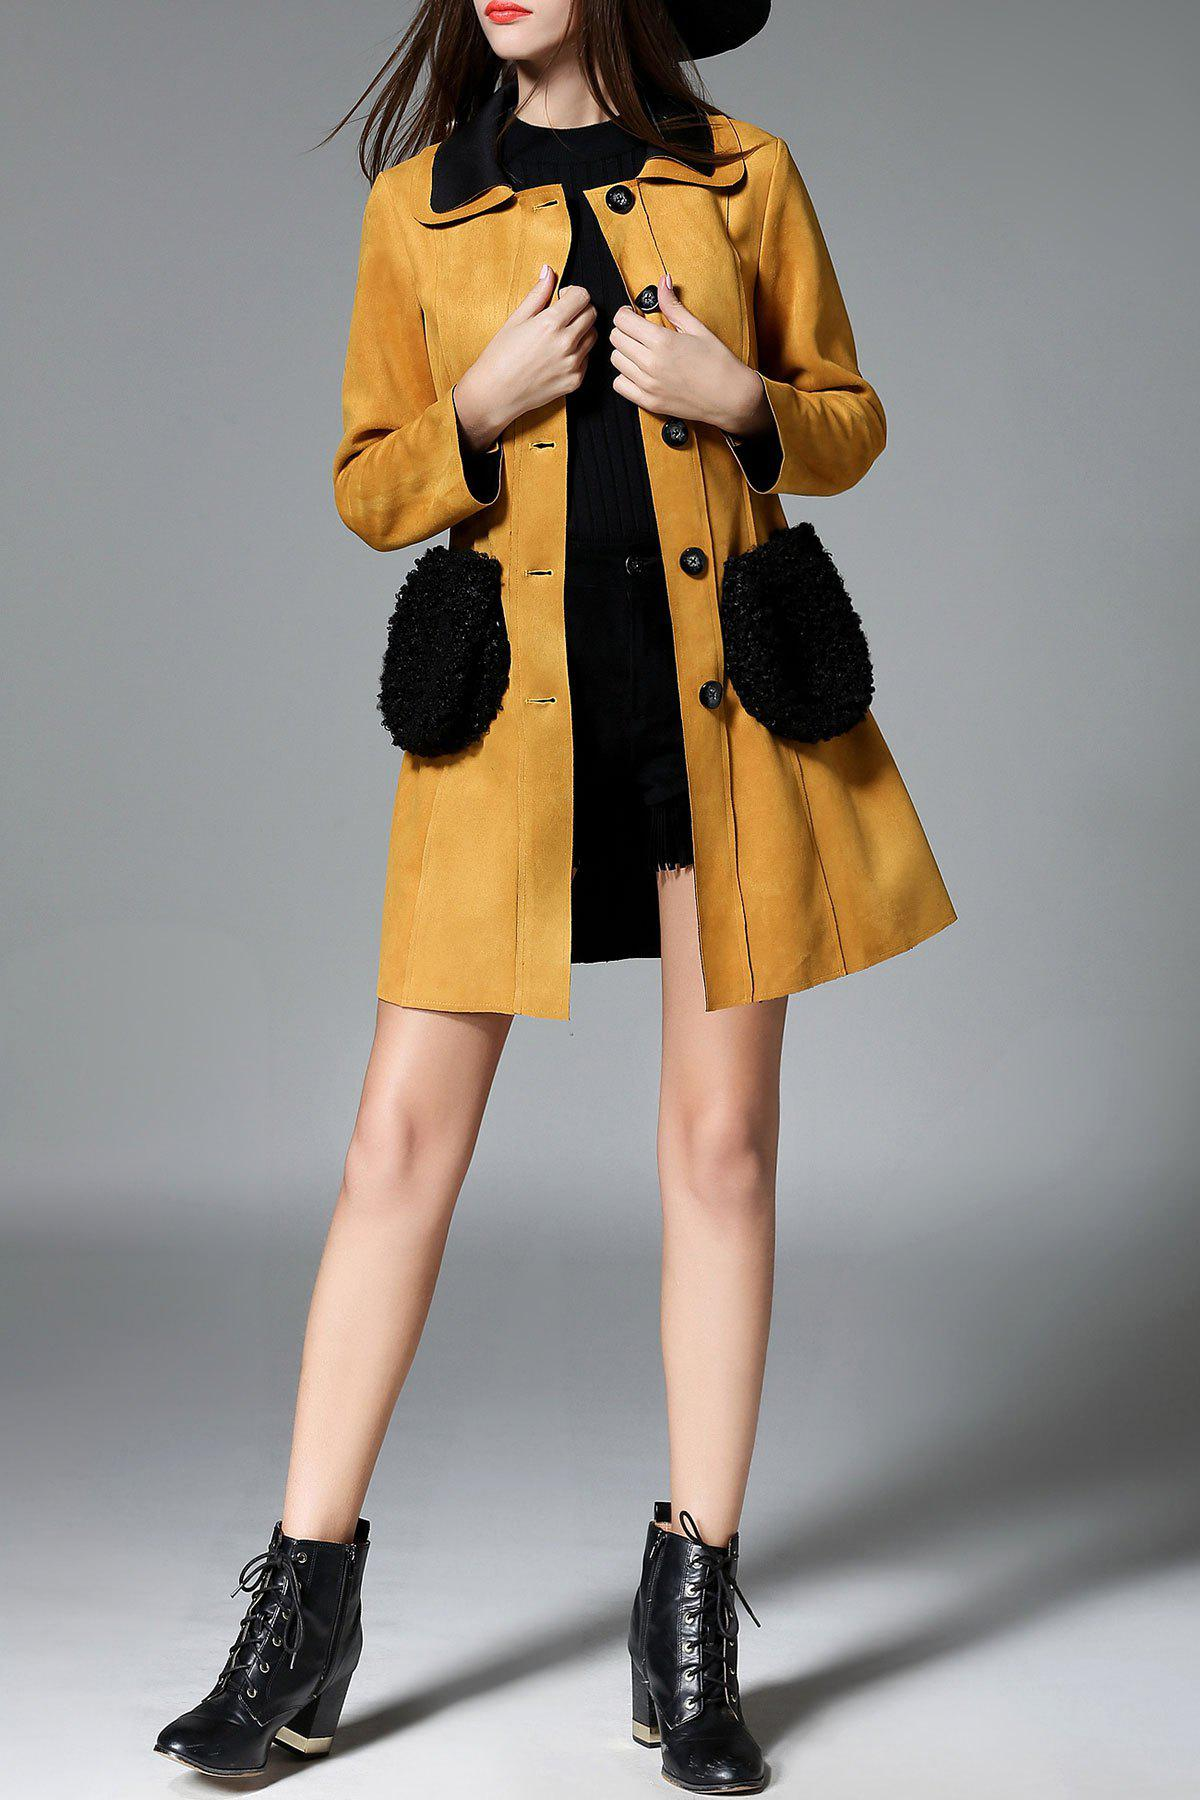 Single Breasted Faux Fur Pocket Suede Coat - EARTHY S